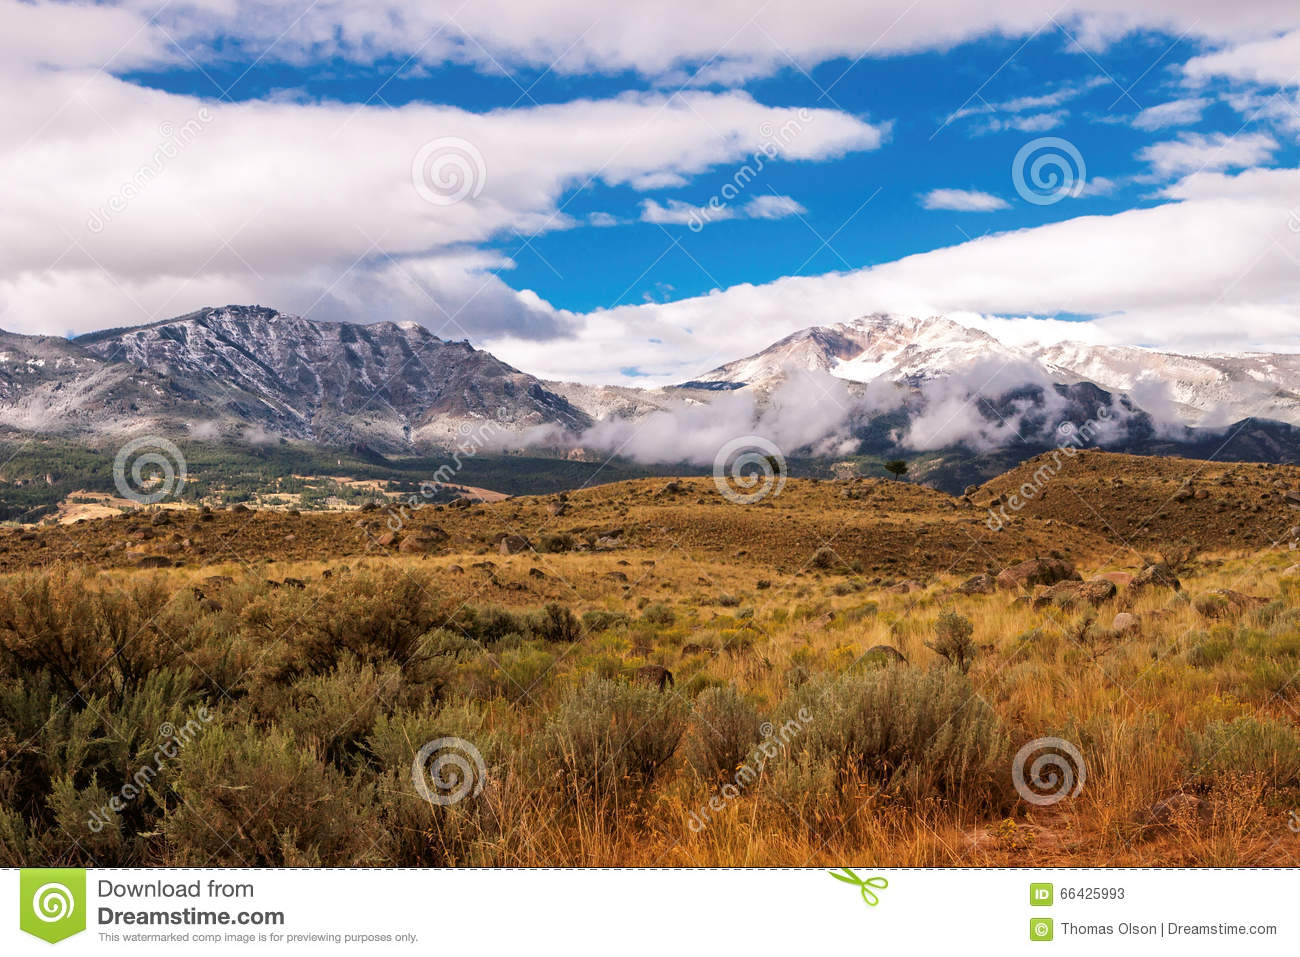 Gallatin Mountains and Sage